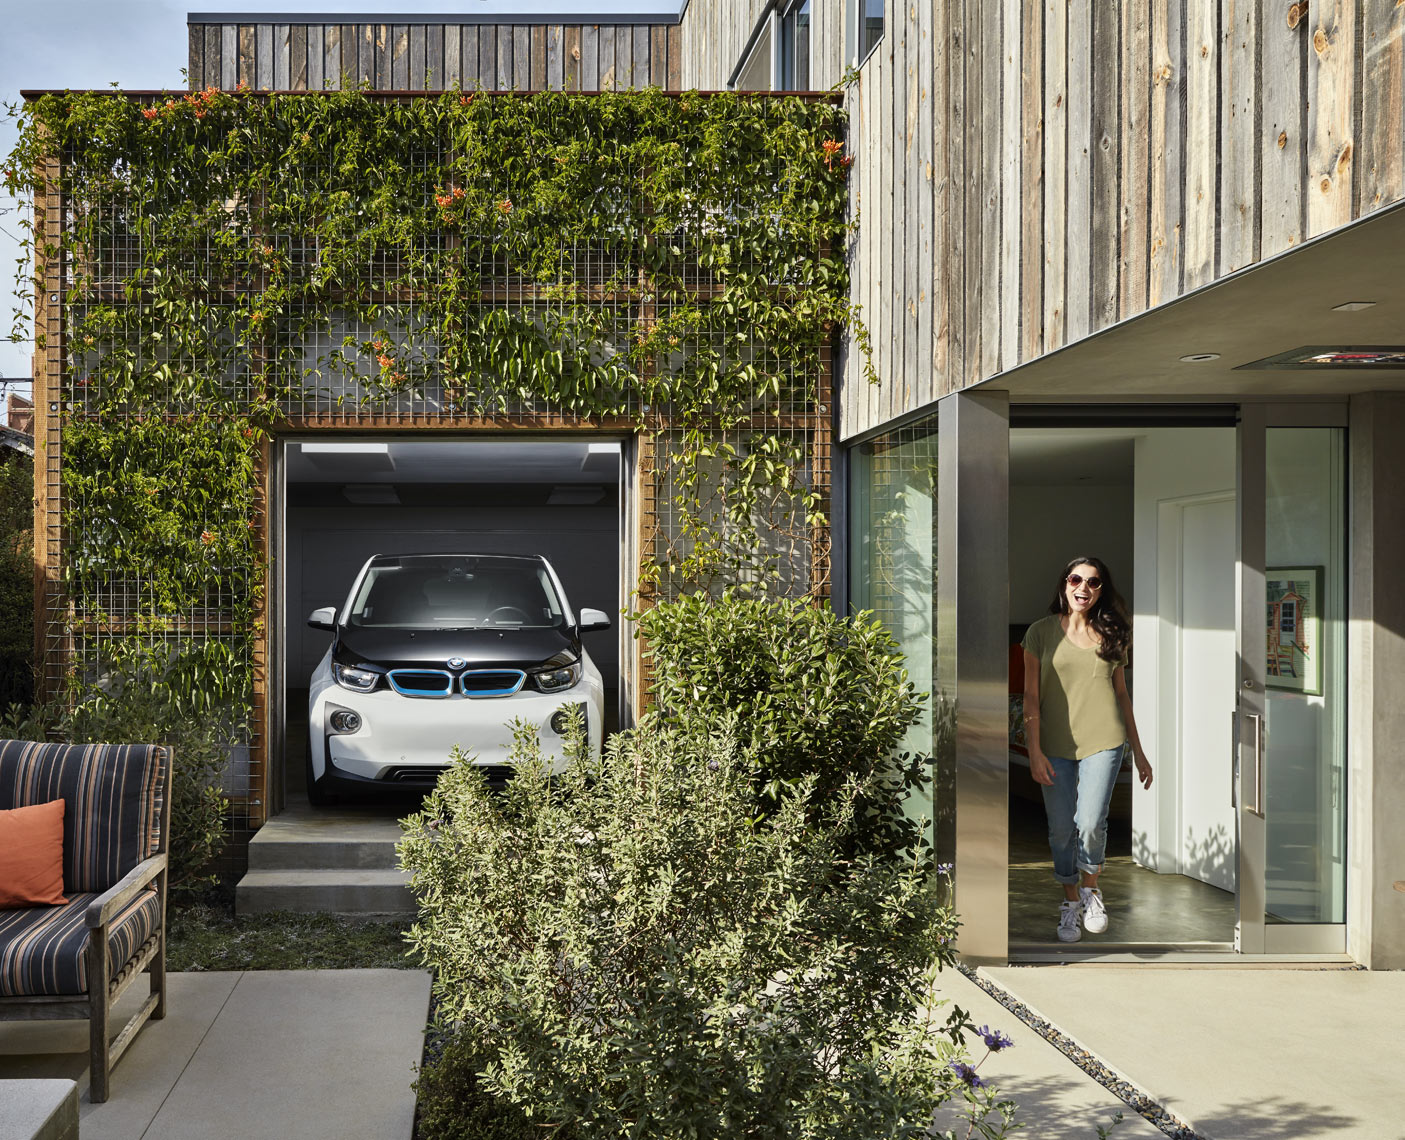 Christopher Nelson Photography|BMWi3|Lifestyle|Architecture|Venice Beach